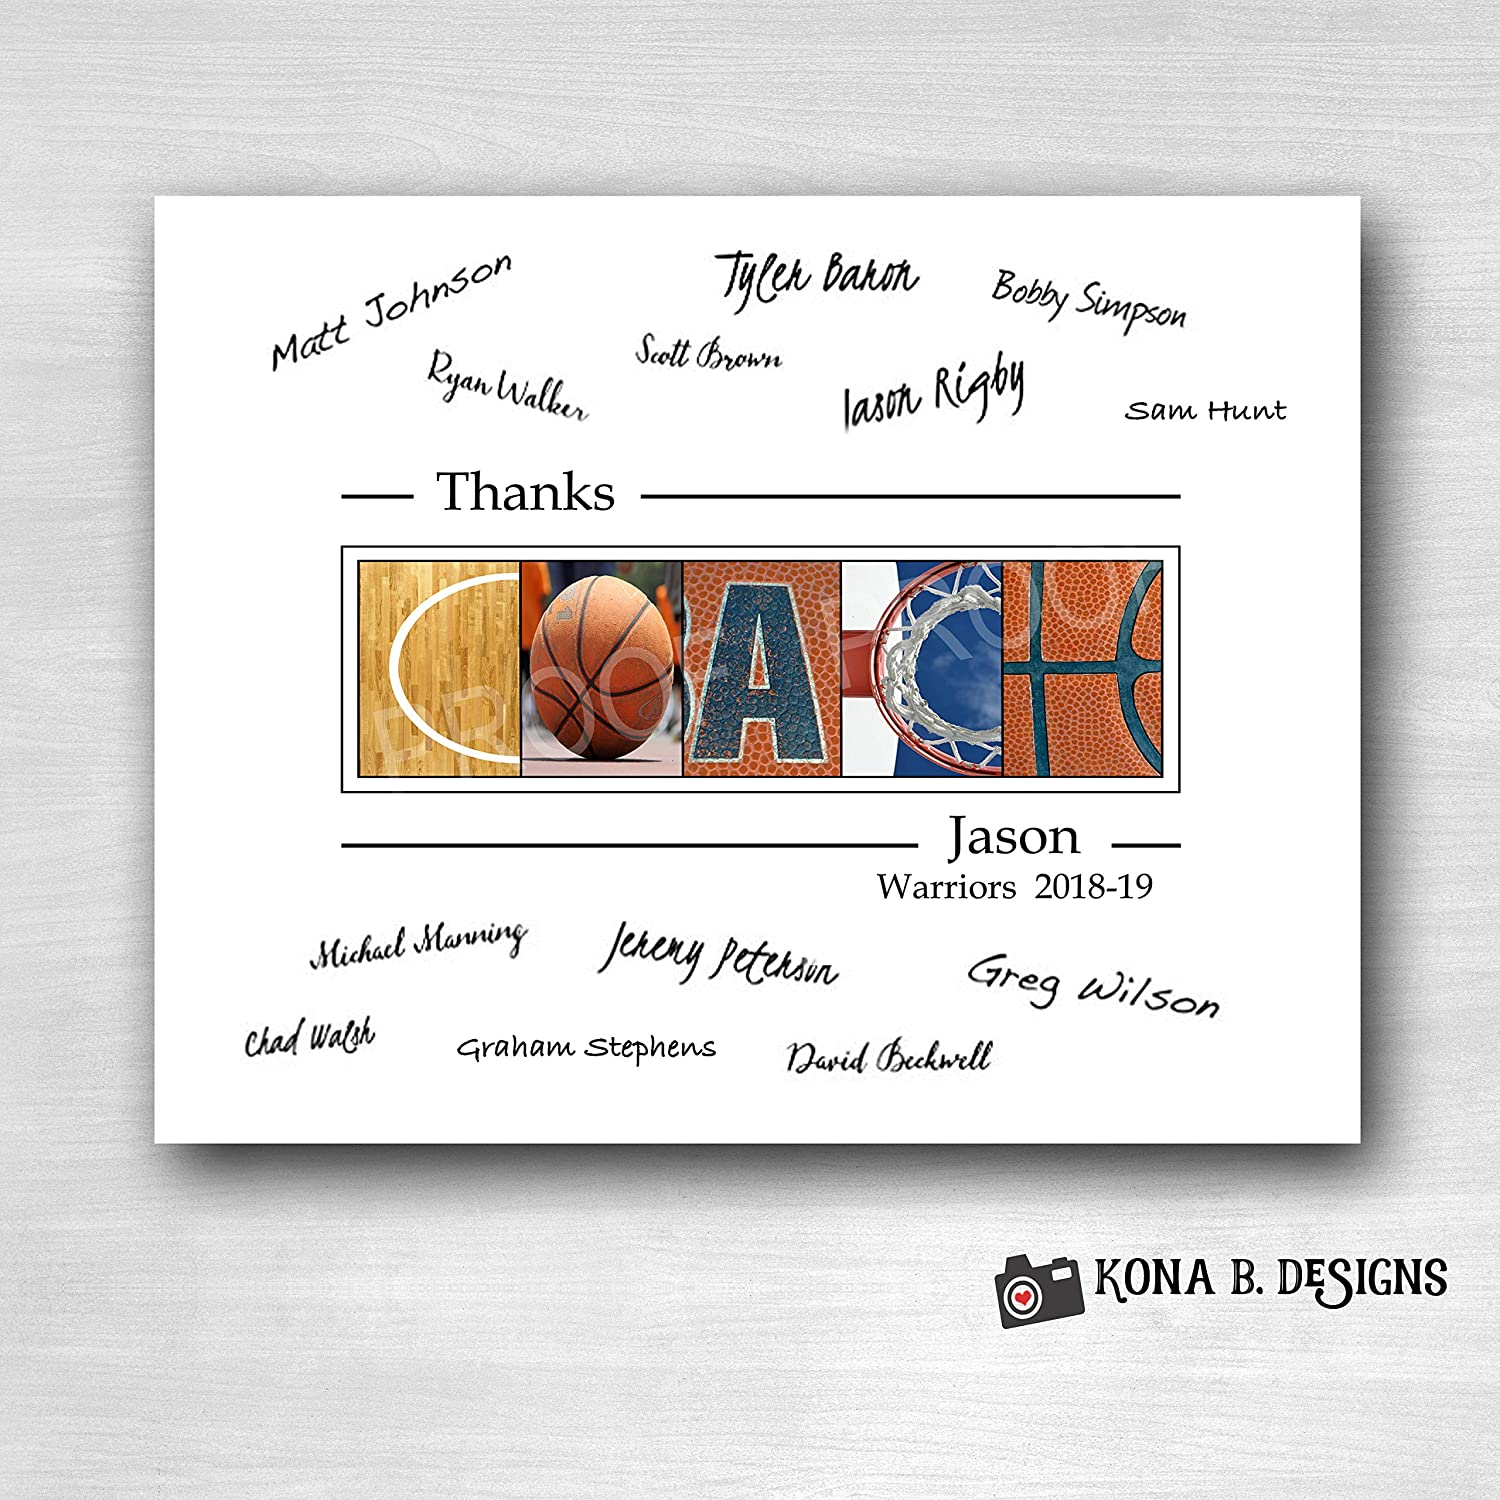 Basketball Coach's Gift with player's signatures - Gift for Basketball Coach - 11x14 with border for signatures